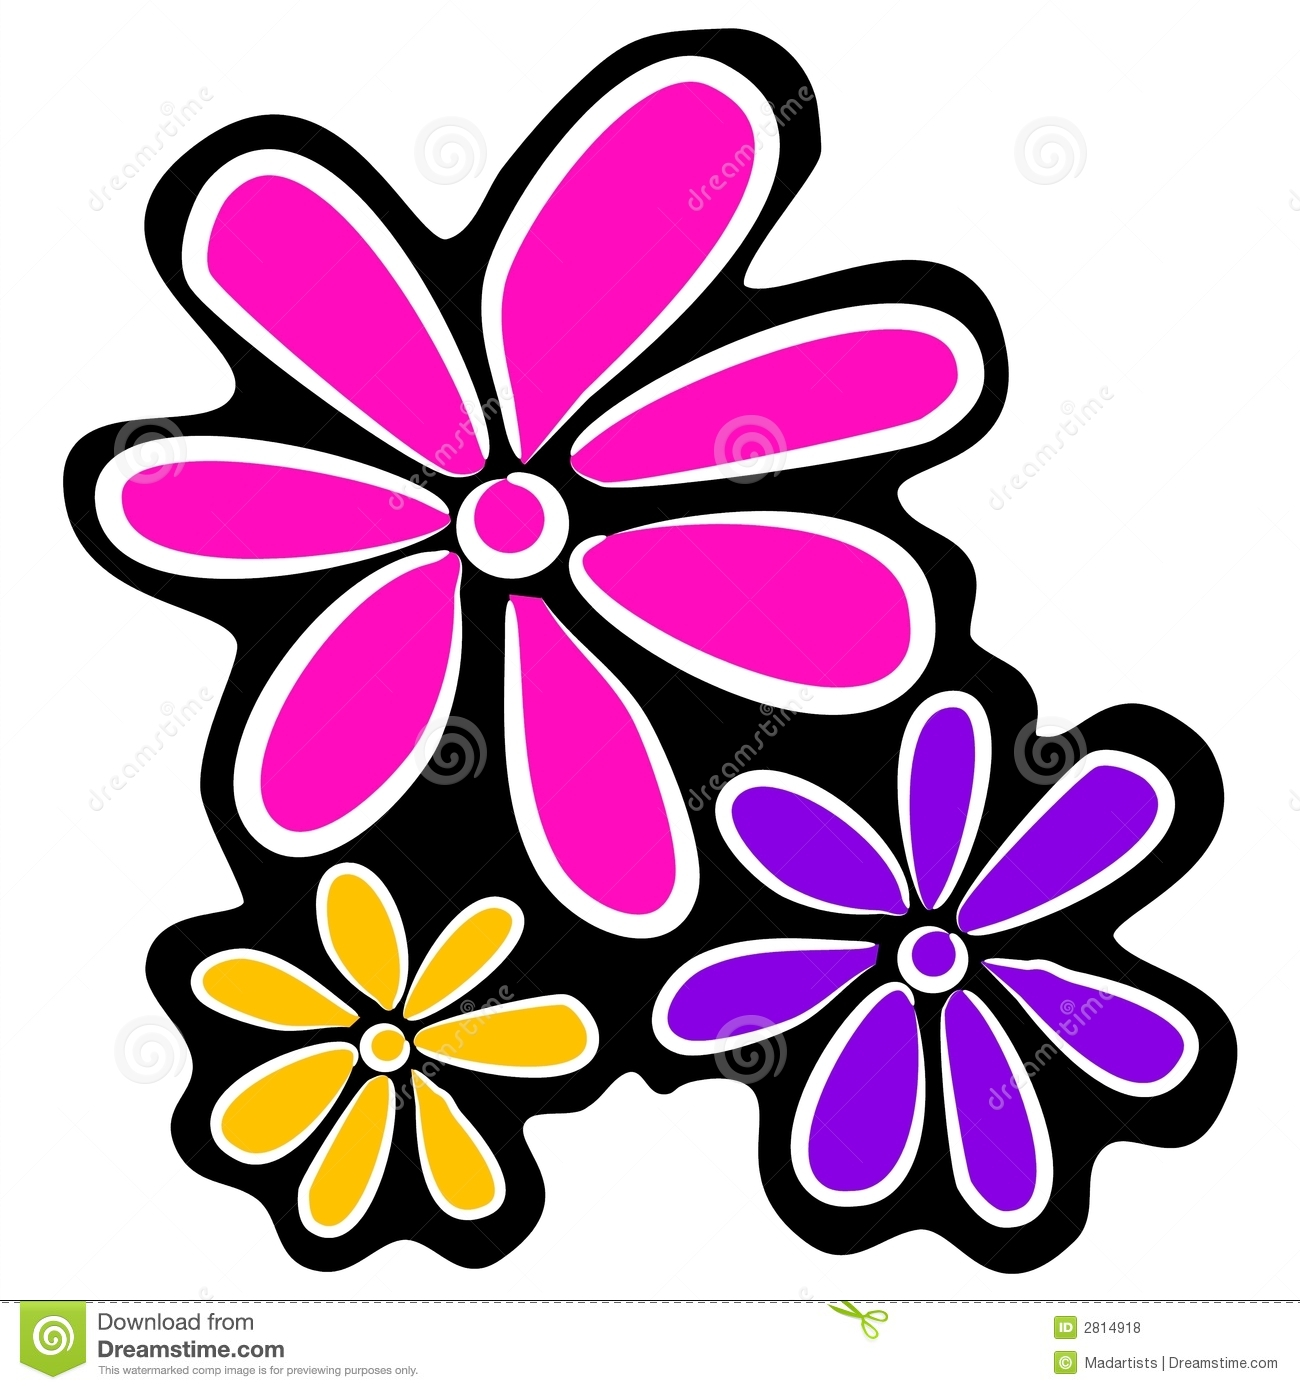 Abstract pink flowers clip art stock illustration illustration of abstract retro flowers clipart royalty free stock photos mightylinksfo Choice Image